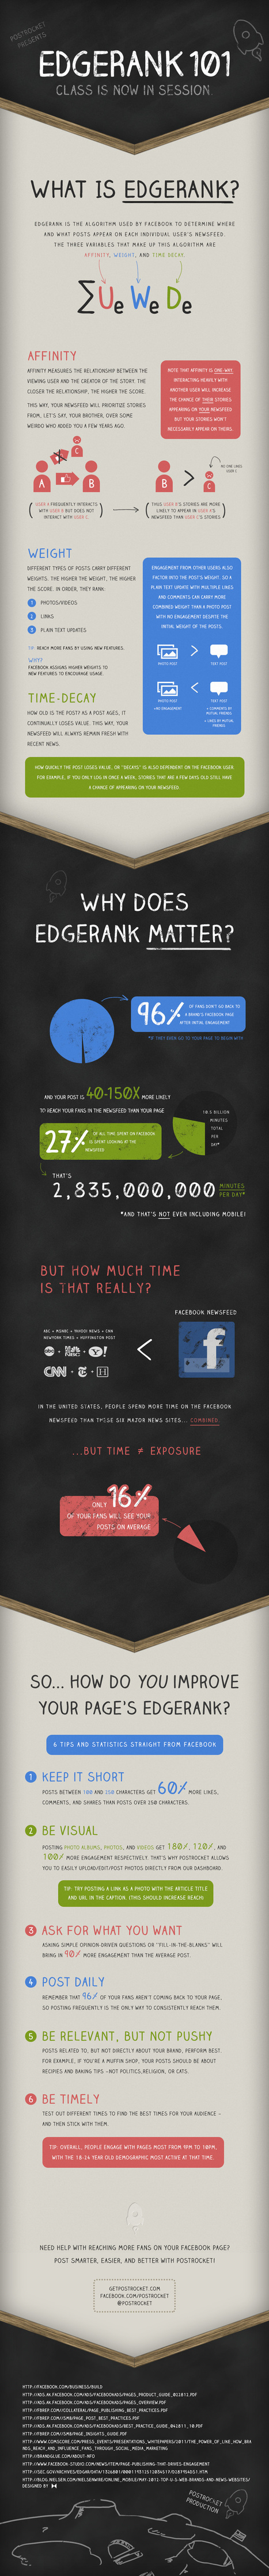 How to increase the visibility of your Facebook Page [infographic] | Best Infographics of all time | Scoop.it